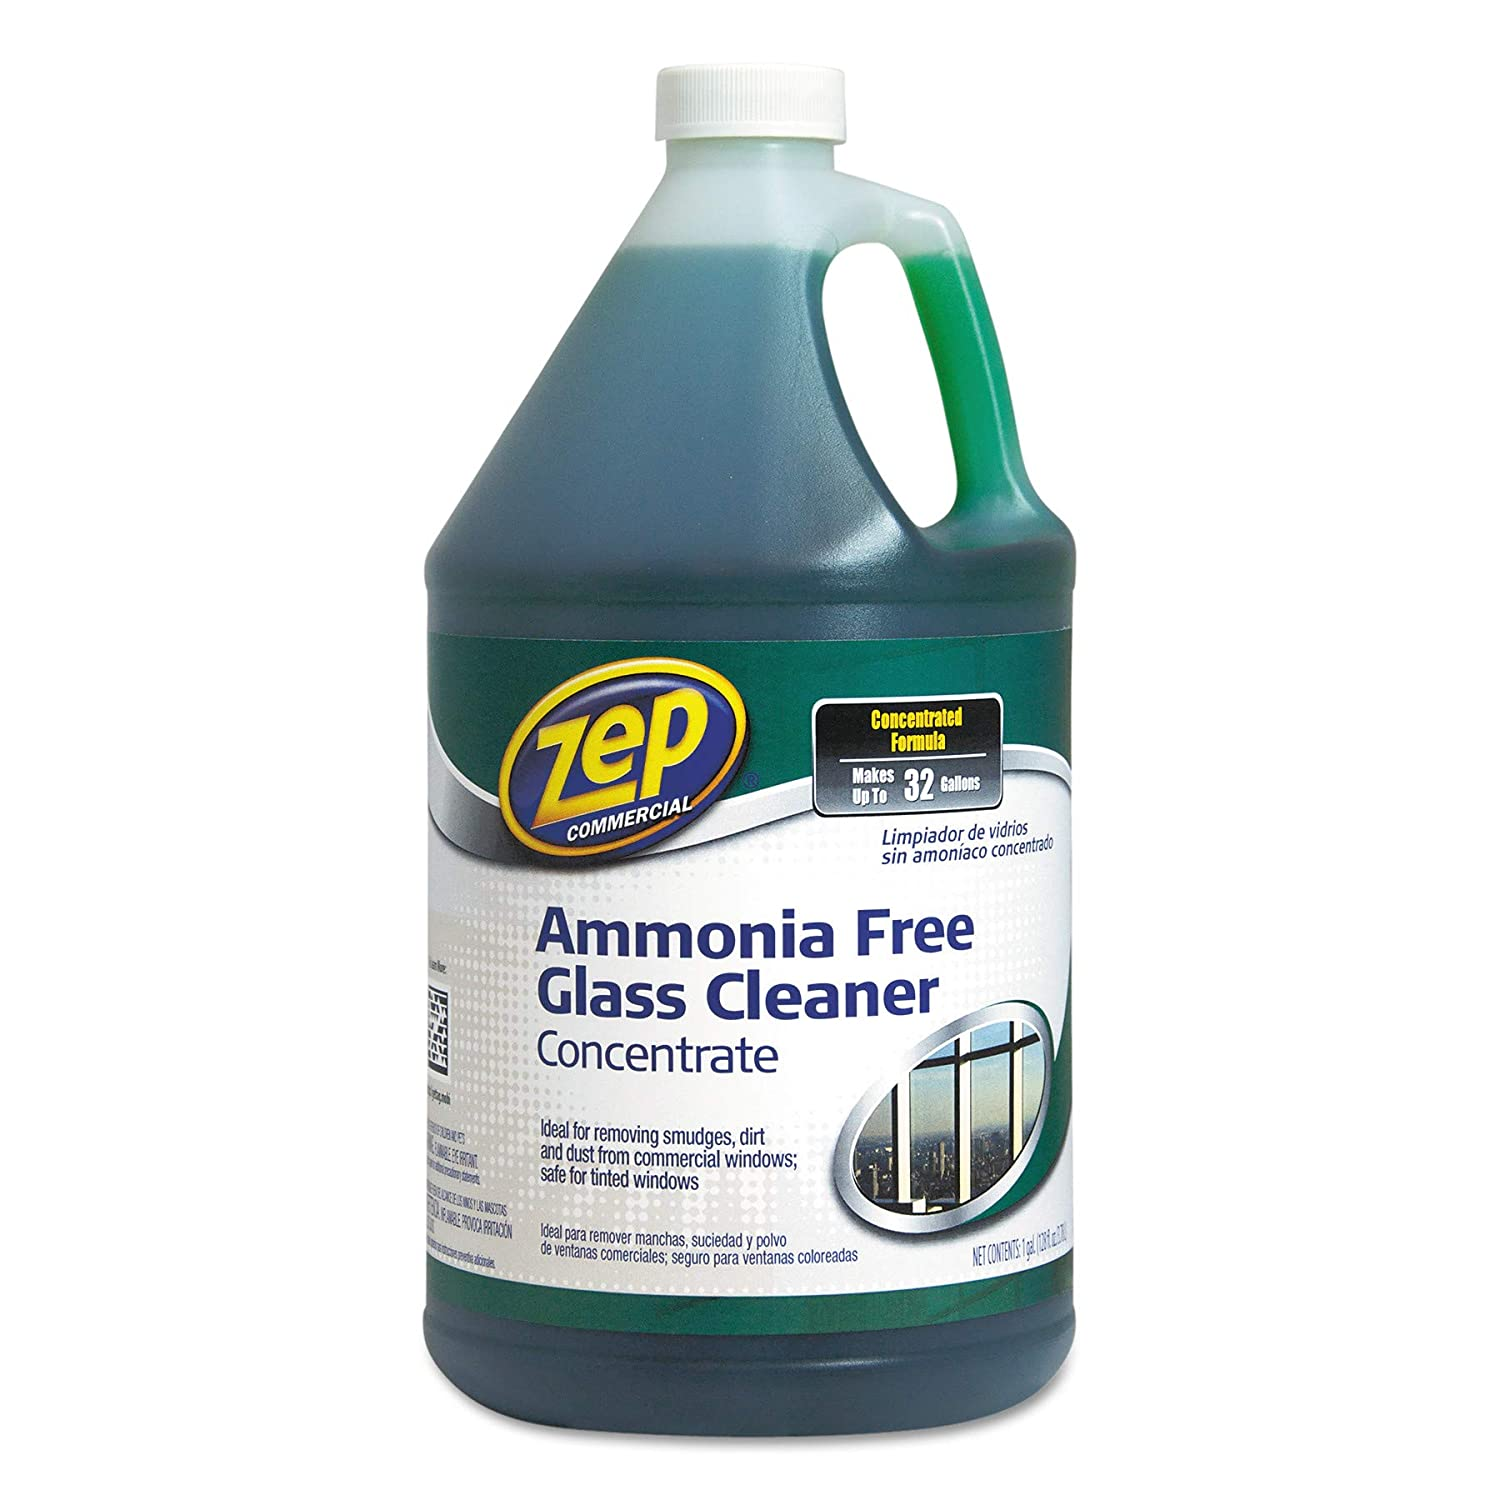 Zep Commercial ZU1052128 Ammonia Free Glass Cleaner, Agradable Scent, 1 gal Bottle by Zep Commercial B001B1AHI2